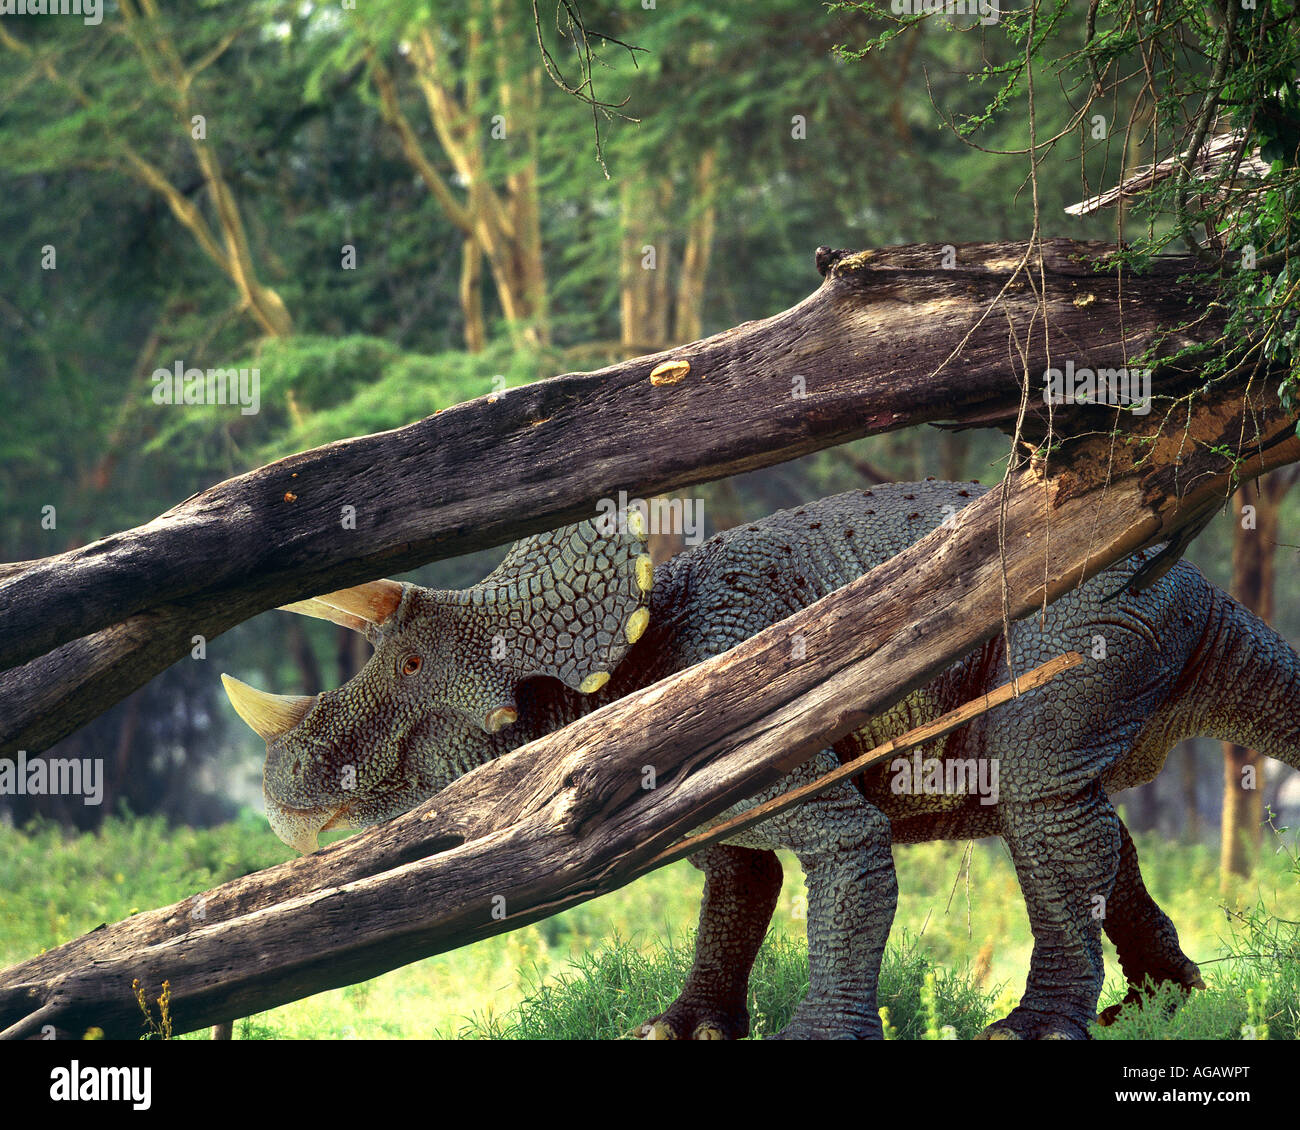 Triceratops dinosaur in an African environment - Stock Image